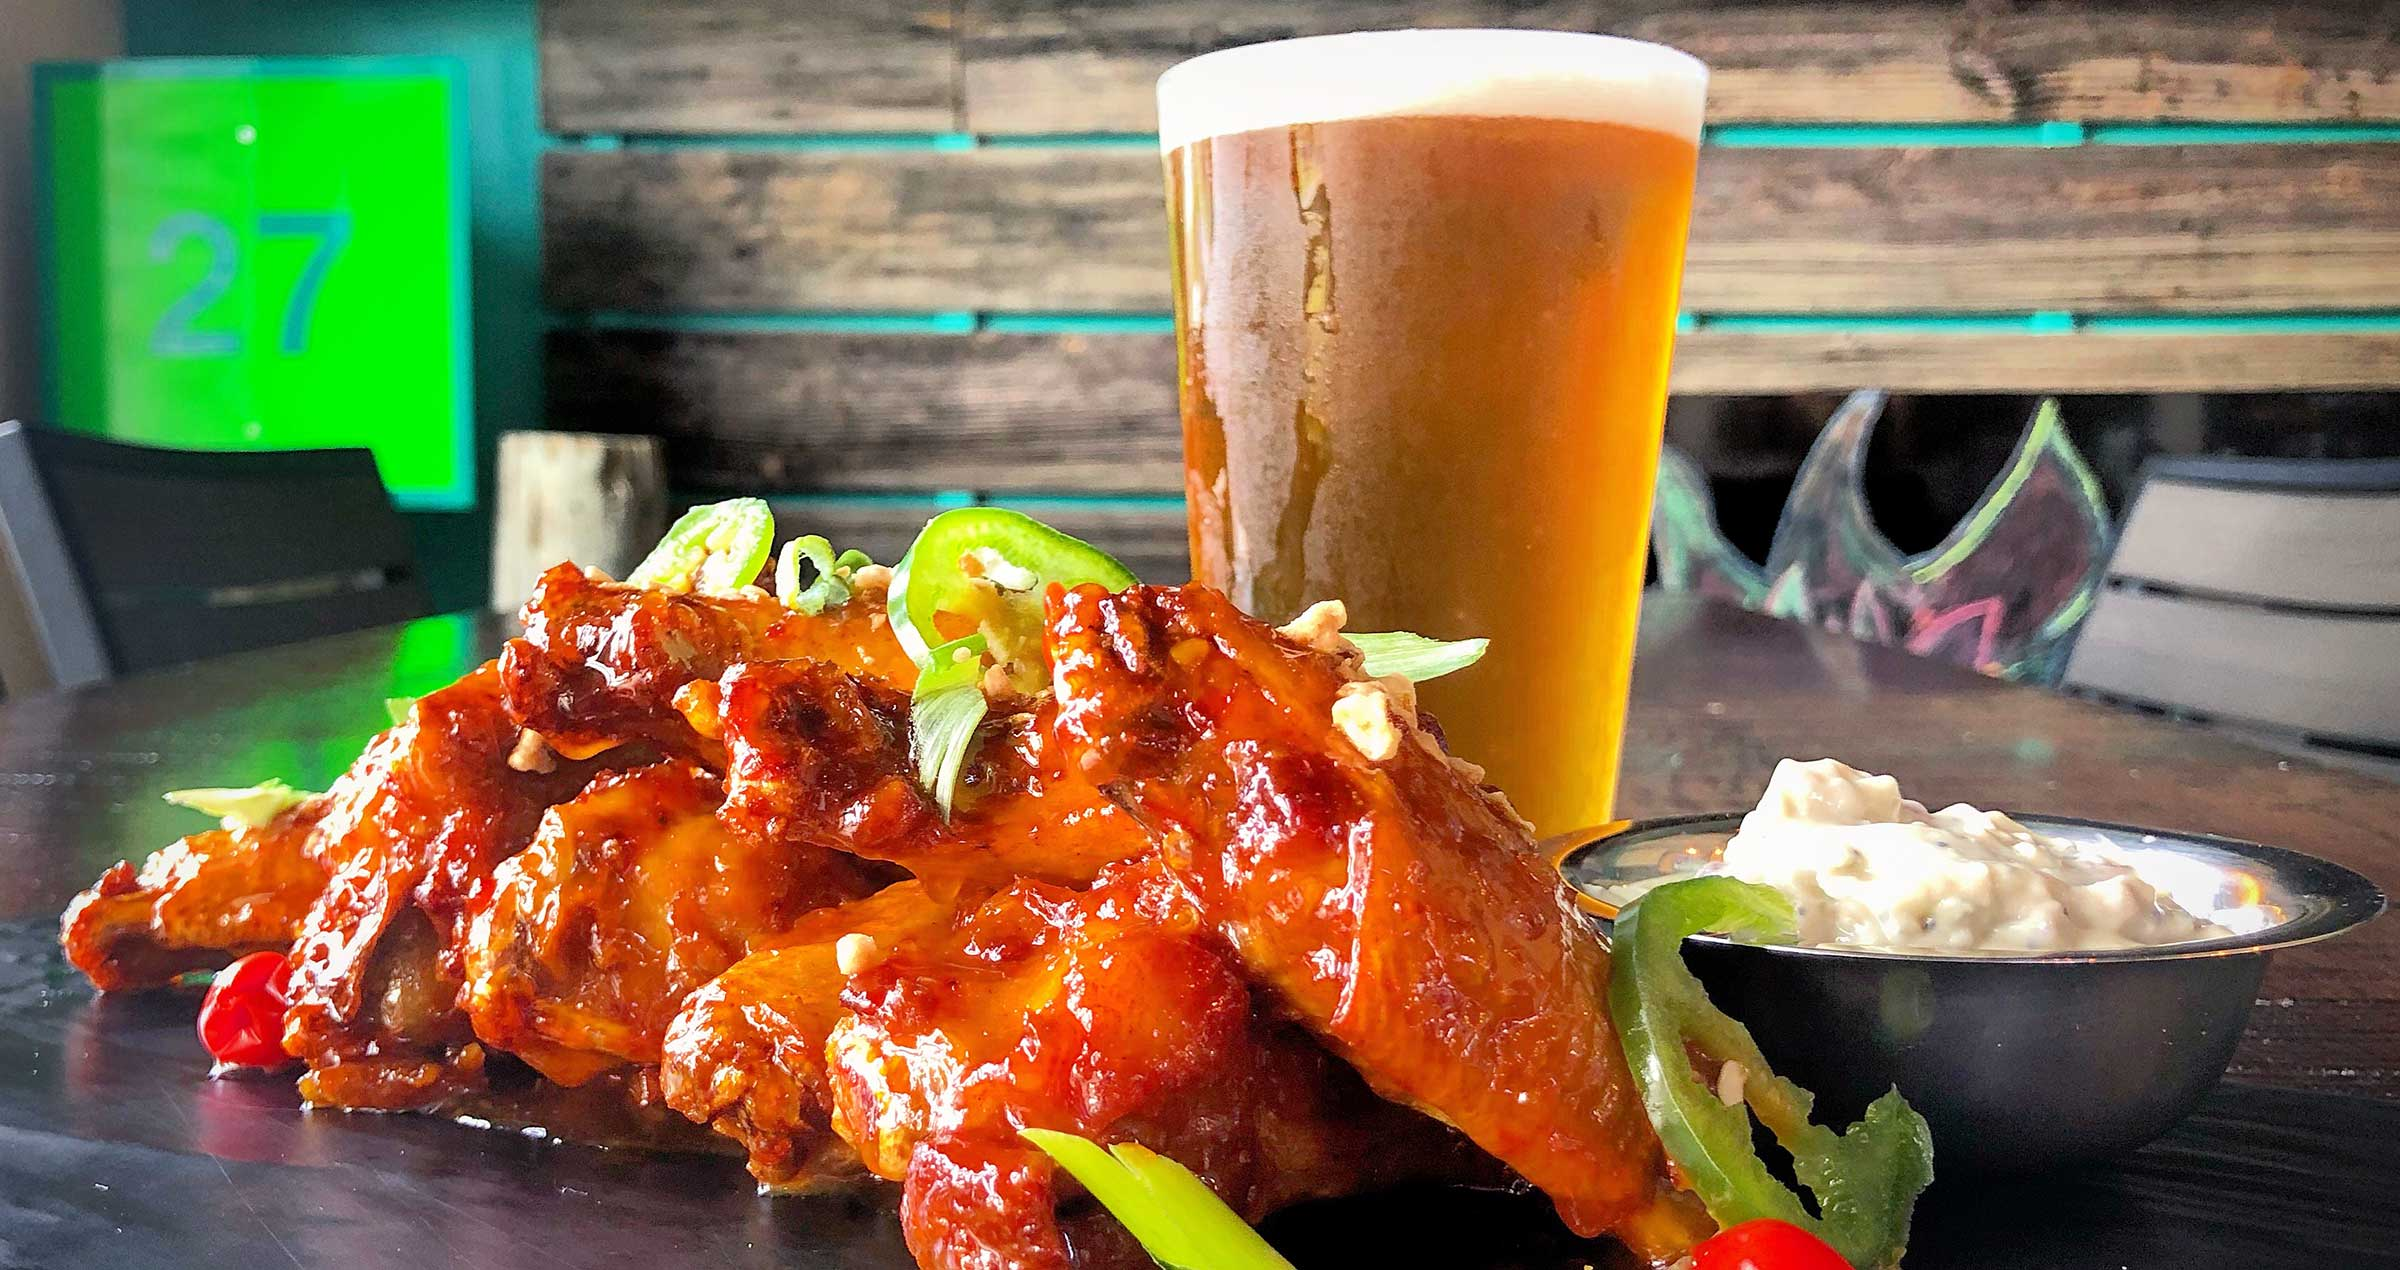 Fried chicken wings with blue cheese and a cold beer